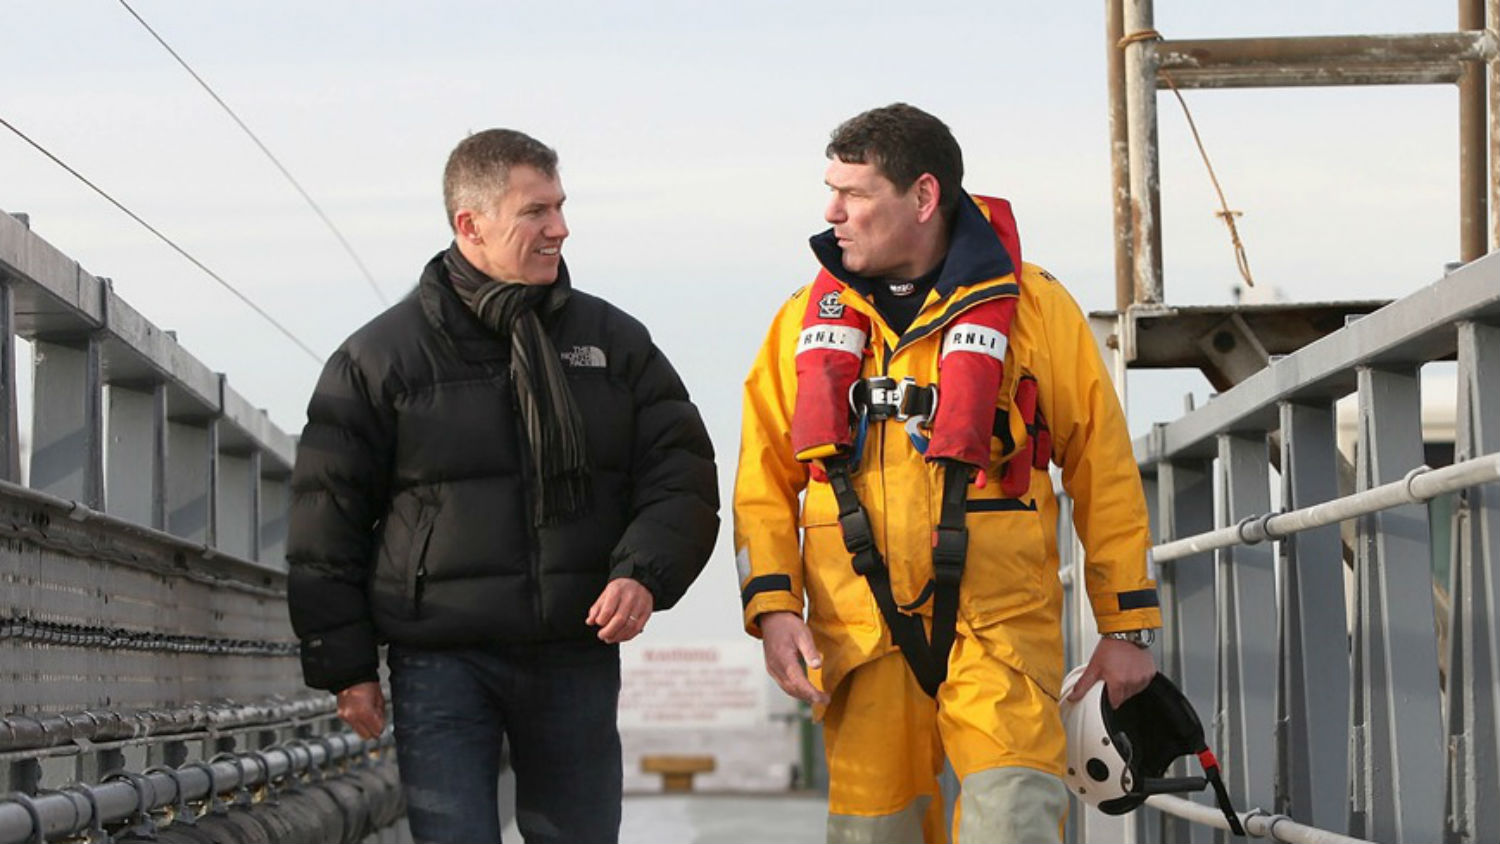 Chris Pilling, Yorkshire Building Society CEO with Dave Steenvoorden, Supetrintendent Coxswain at RNLI Humber